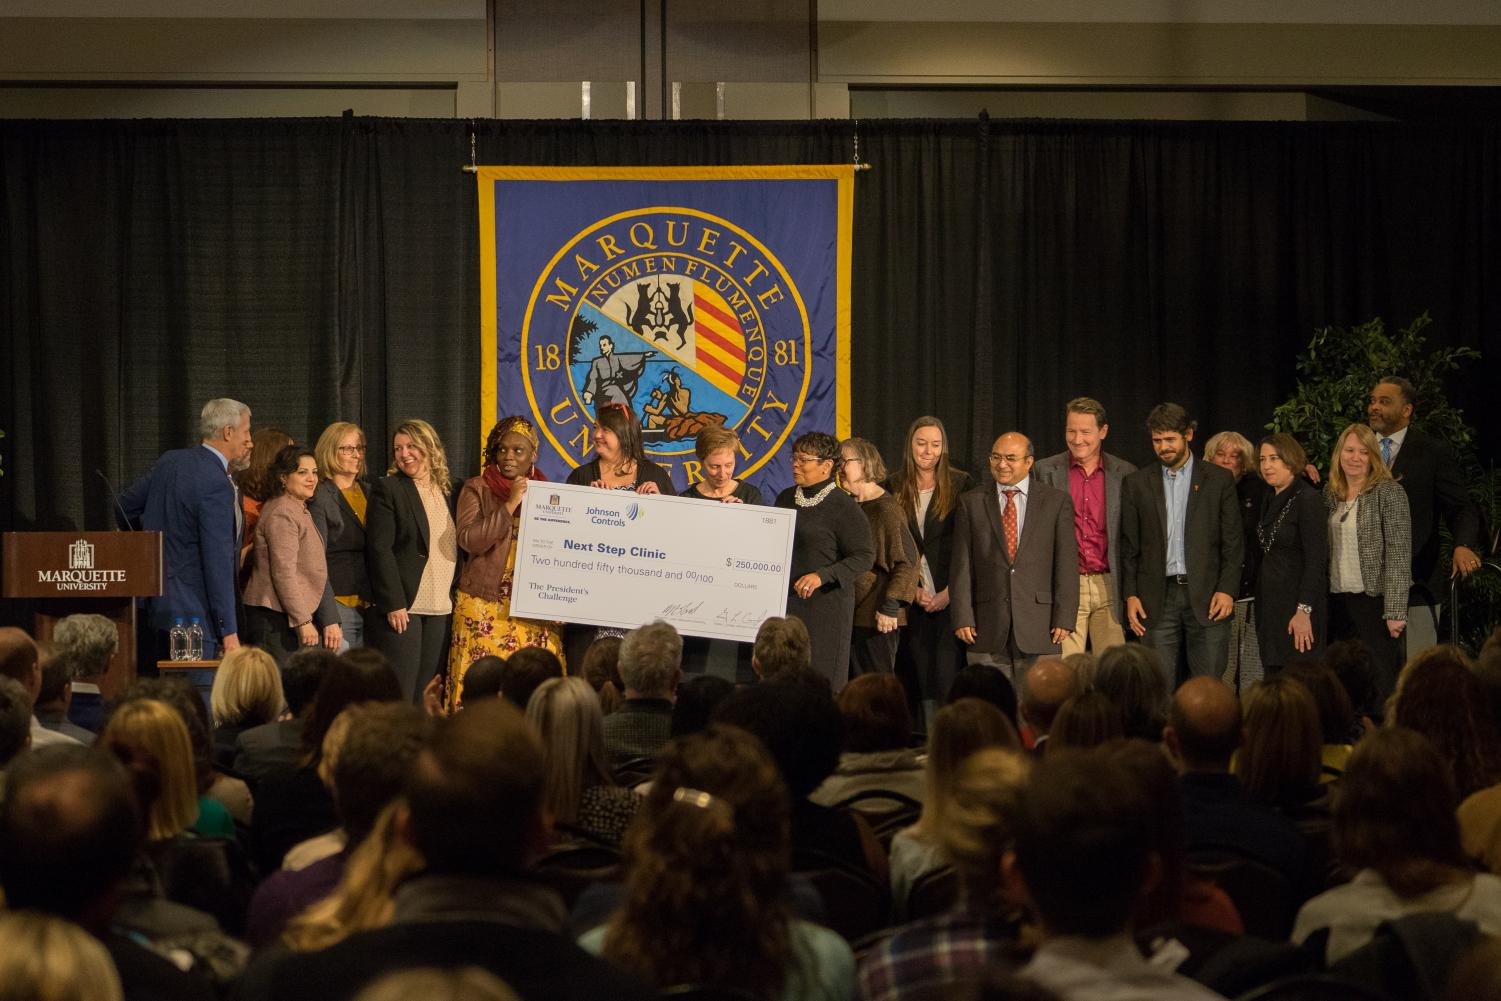 Amy Van Hecke and the Next Step Clinic were the winners of the President's challenge.